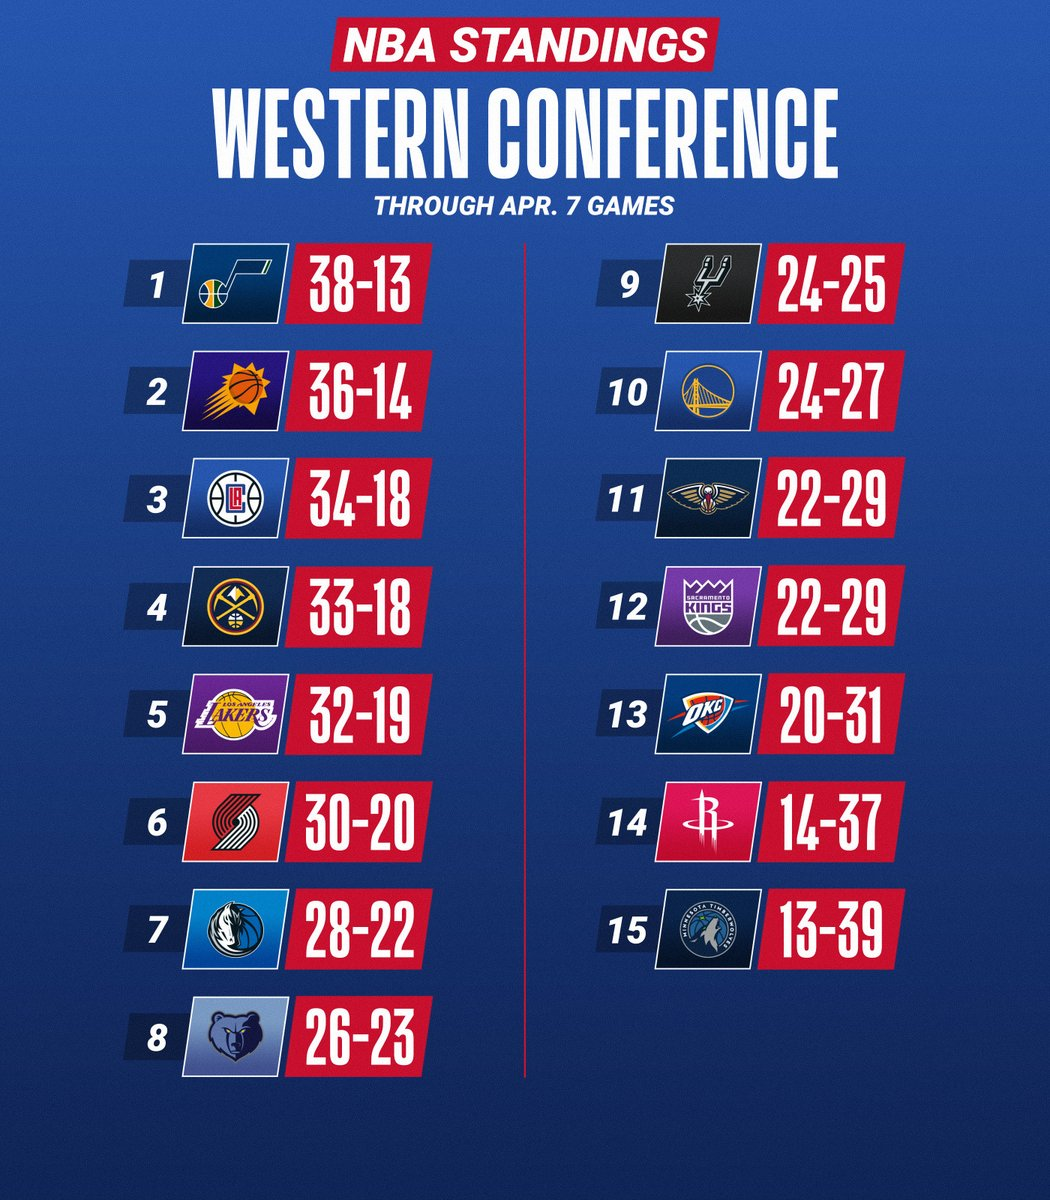 The @Suns and @nuggets reach 7 straight wins!  ➡️ Teams ranked 7-10 will participate in the NBA Play-In Tournament after the regular season (May 18-21) to secure the final two spots in the Playoffs for each conference. https://t.co/Oo4SyODS4l